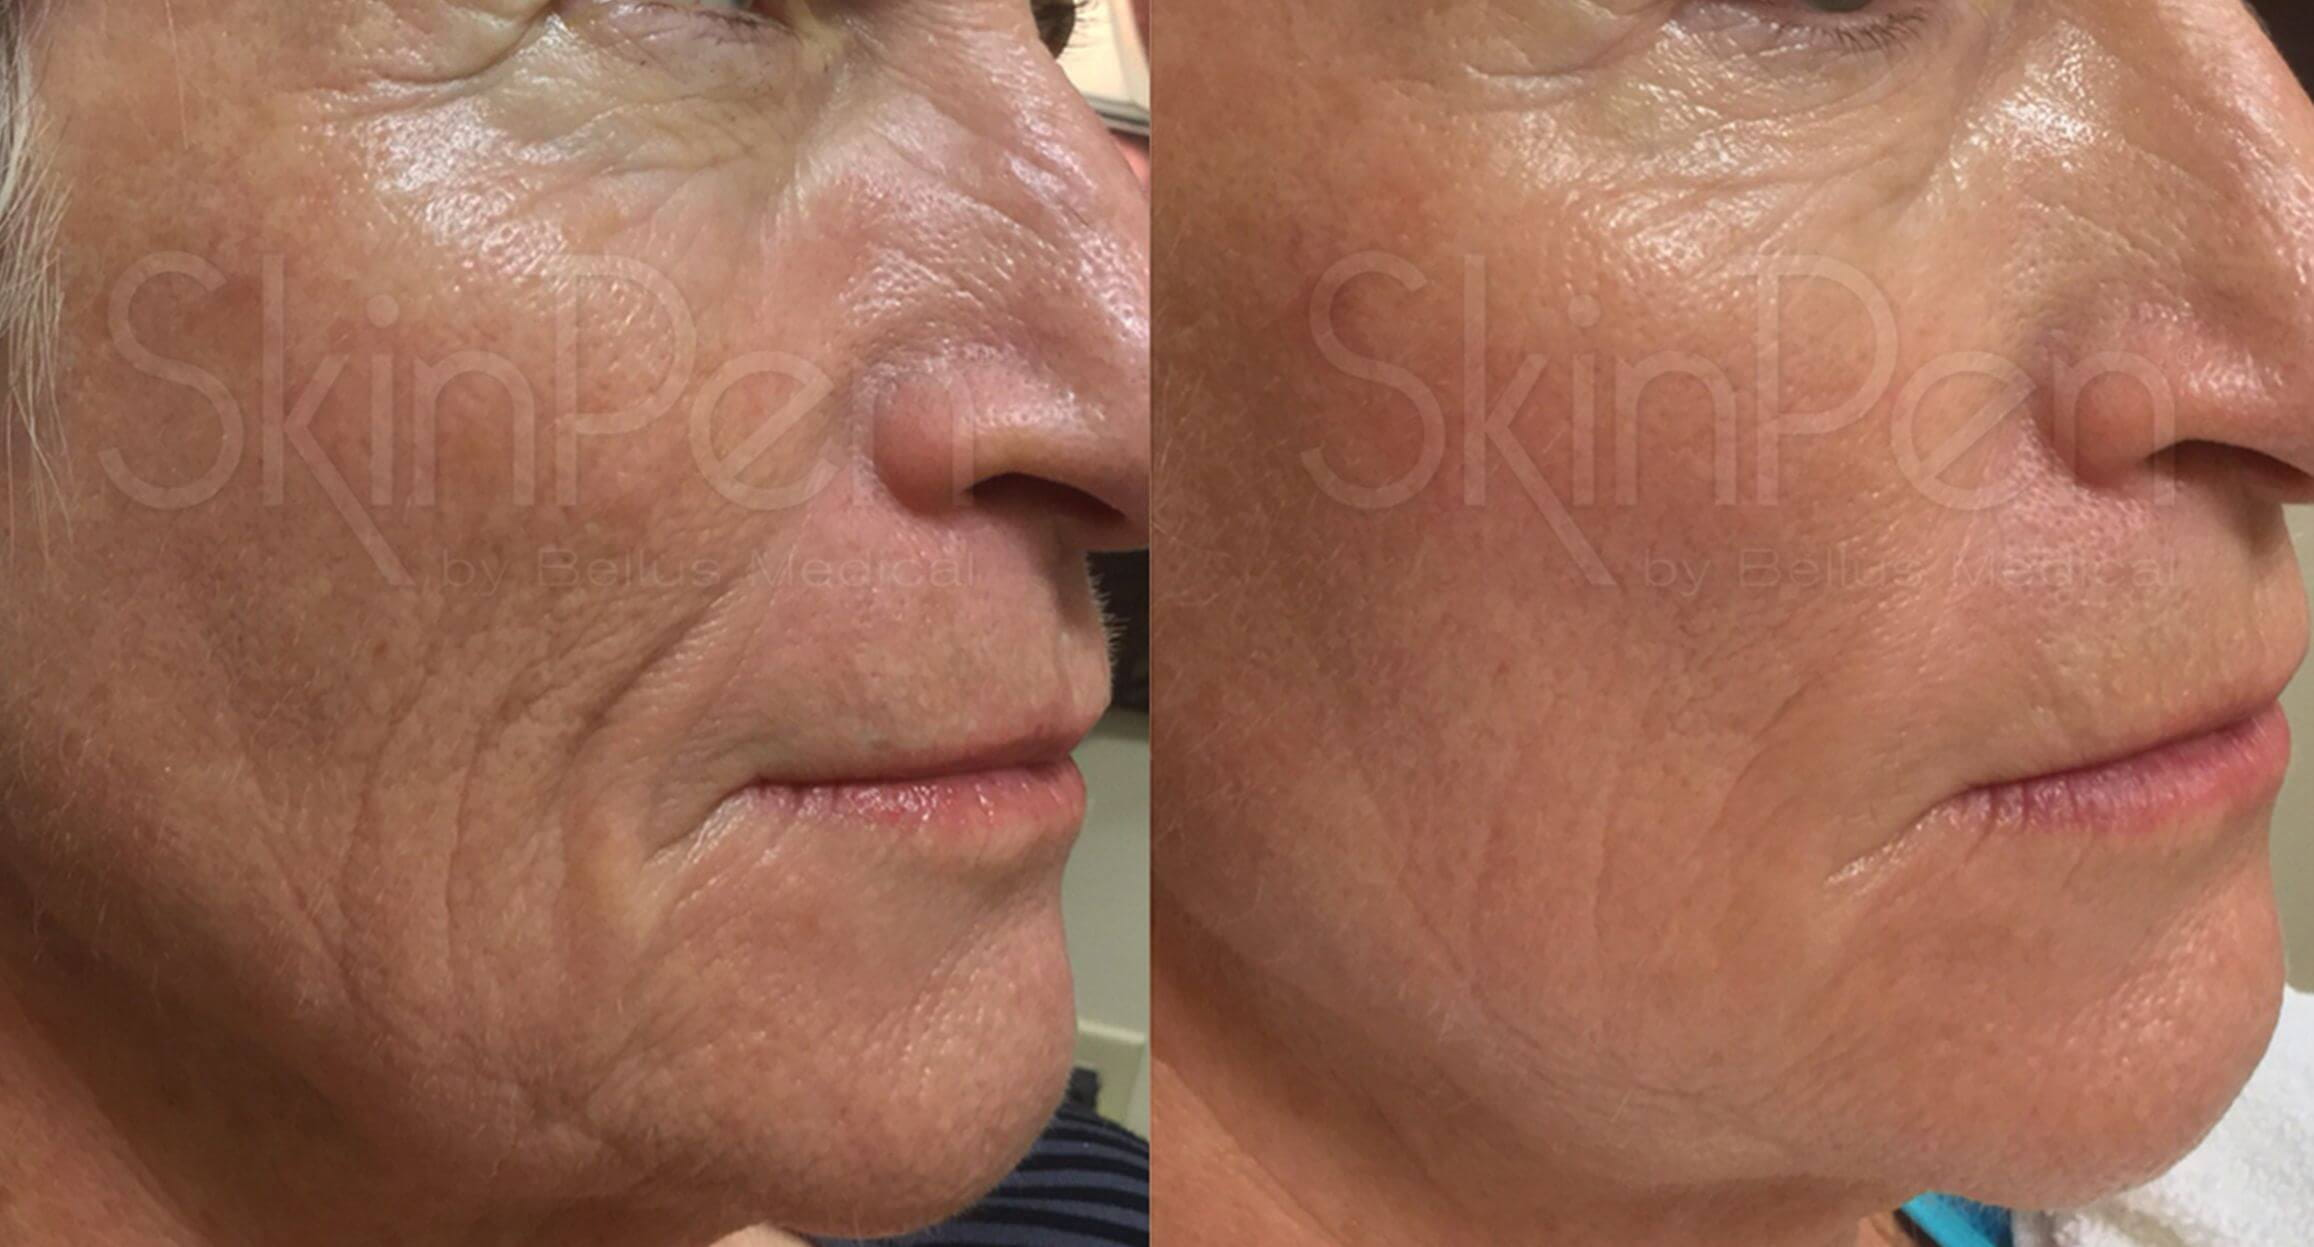 SkinPen skin rejuvenation